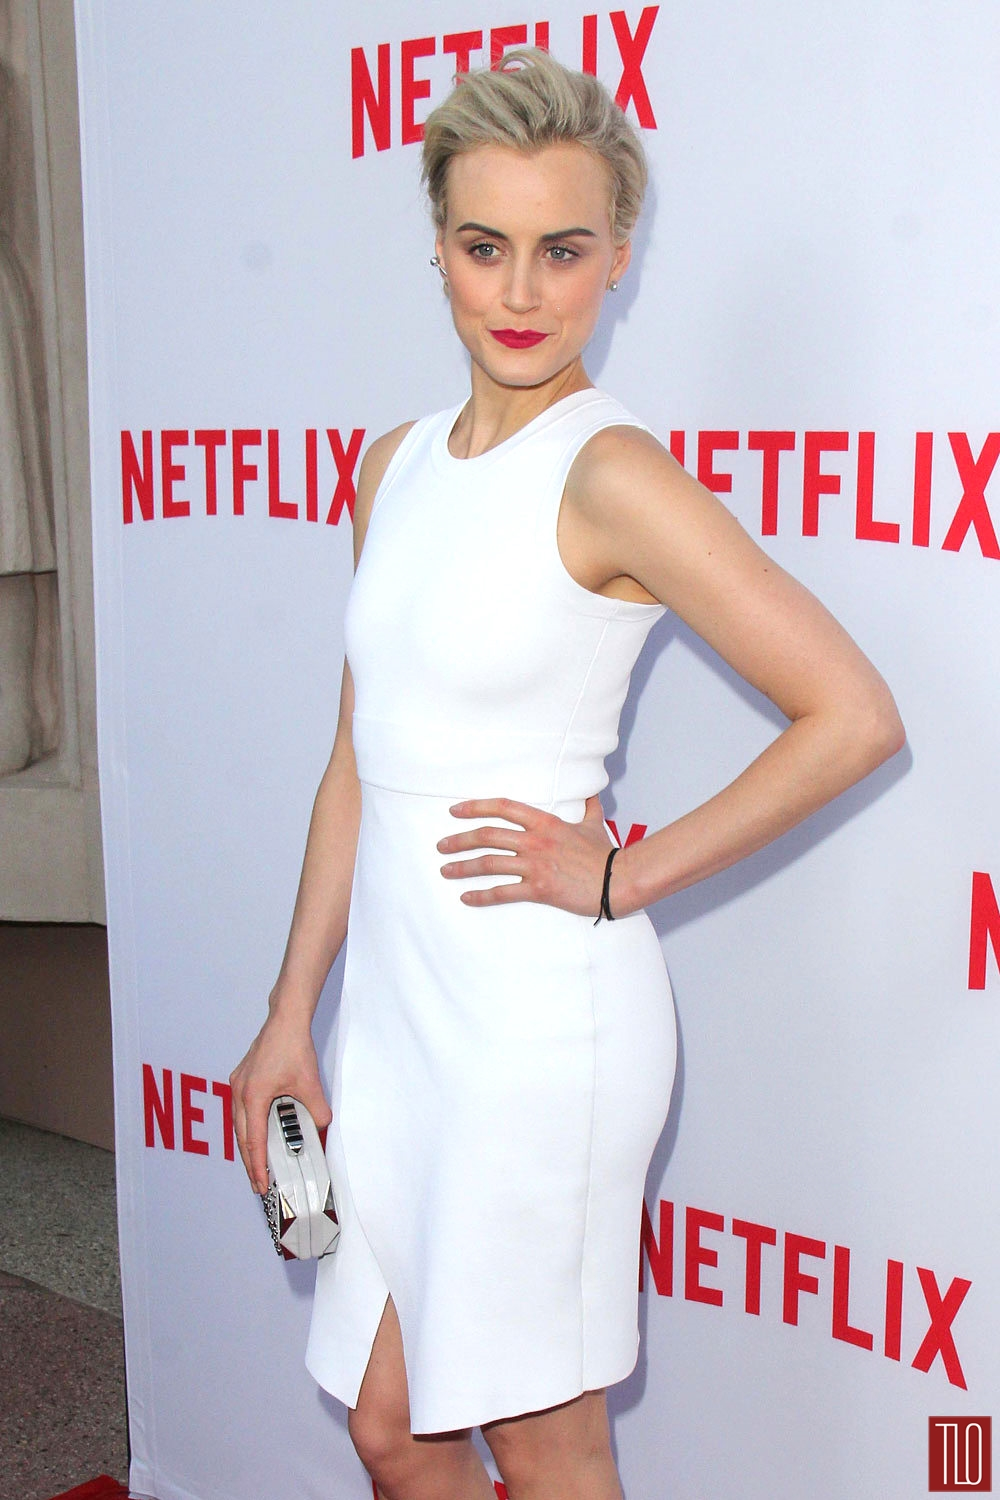 Taylor-Schilling-ALC-Netflix-Women-Ruling-TV-Event-Tom-Lorenzo-Site-TLO (3)